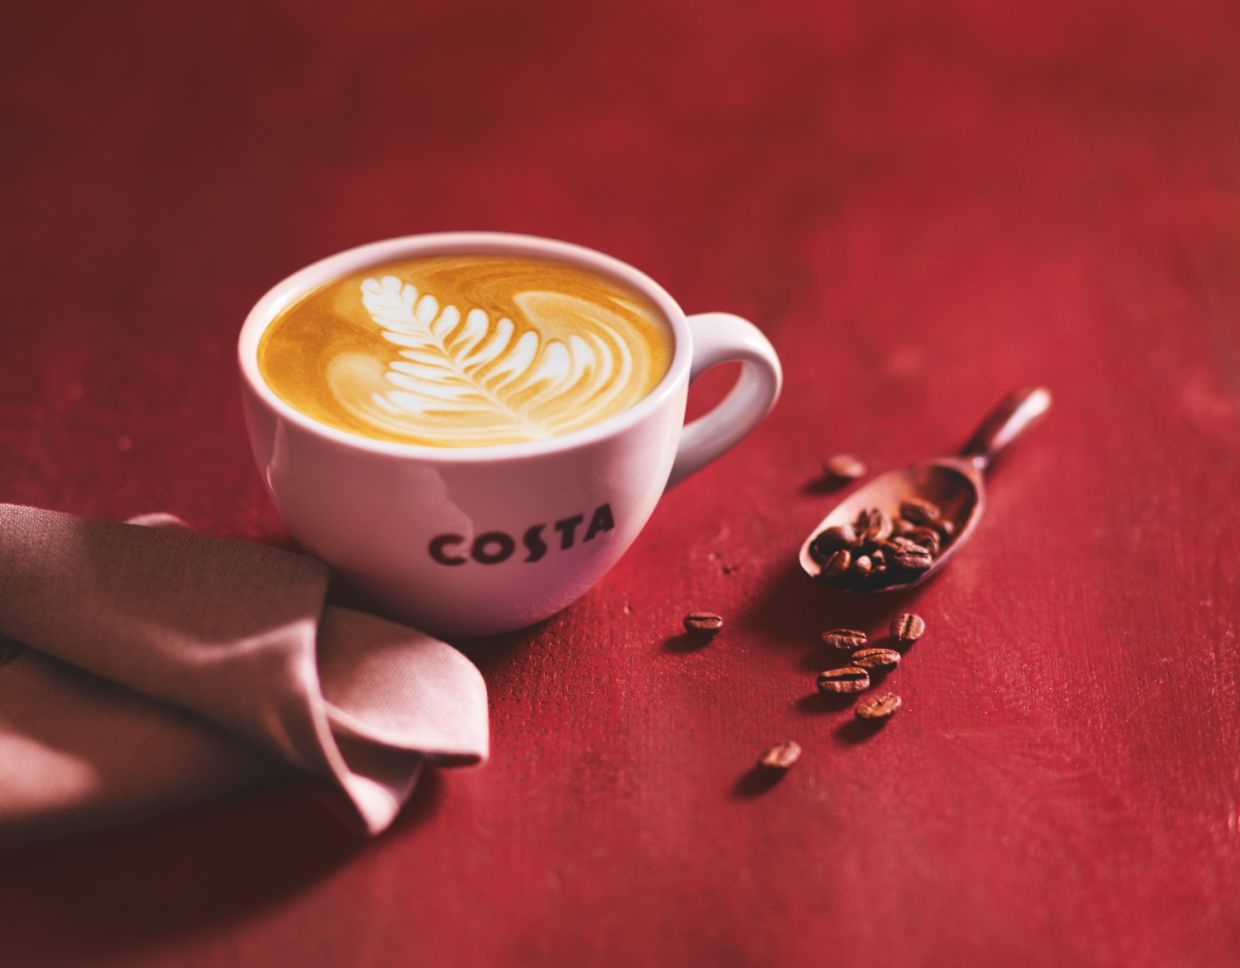 Earn 'beans' reward points and redeem cashback offers from Costa Coffee.